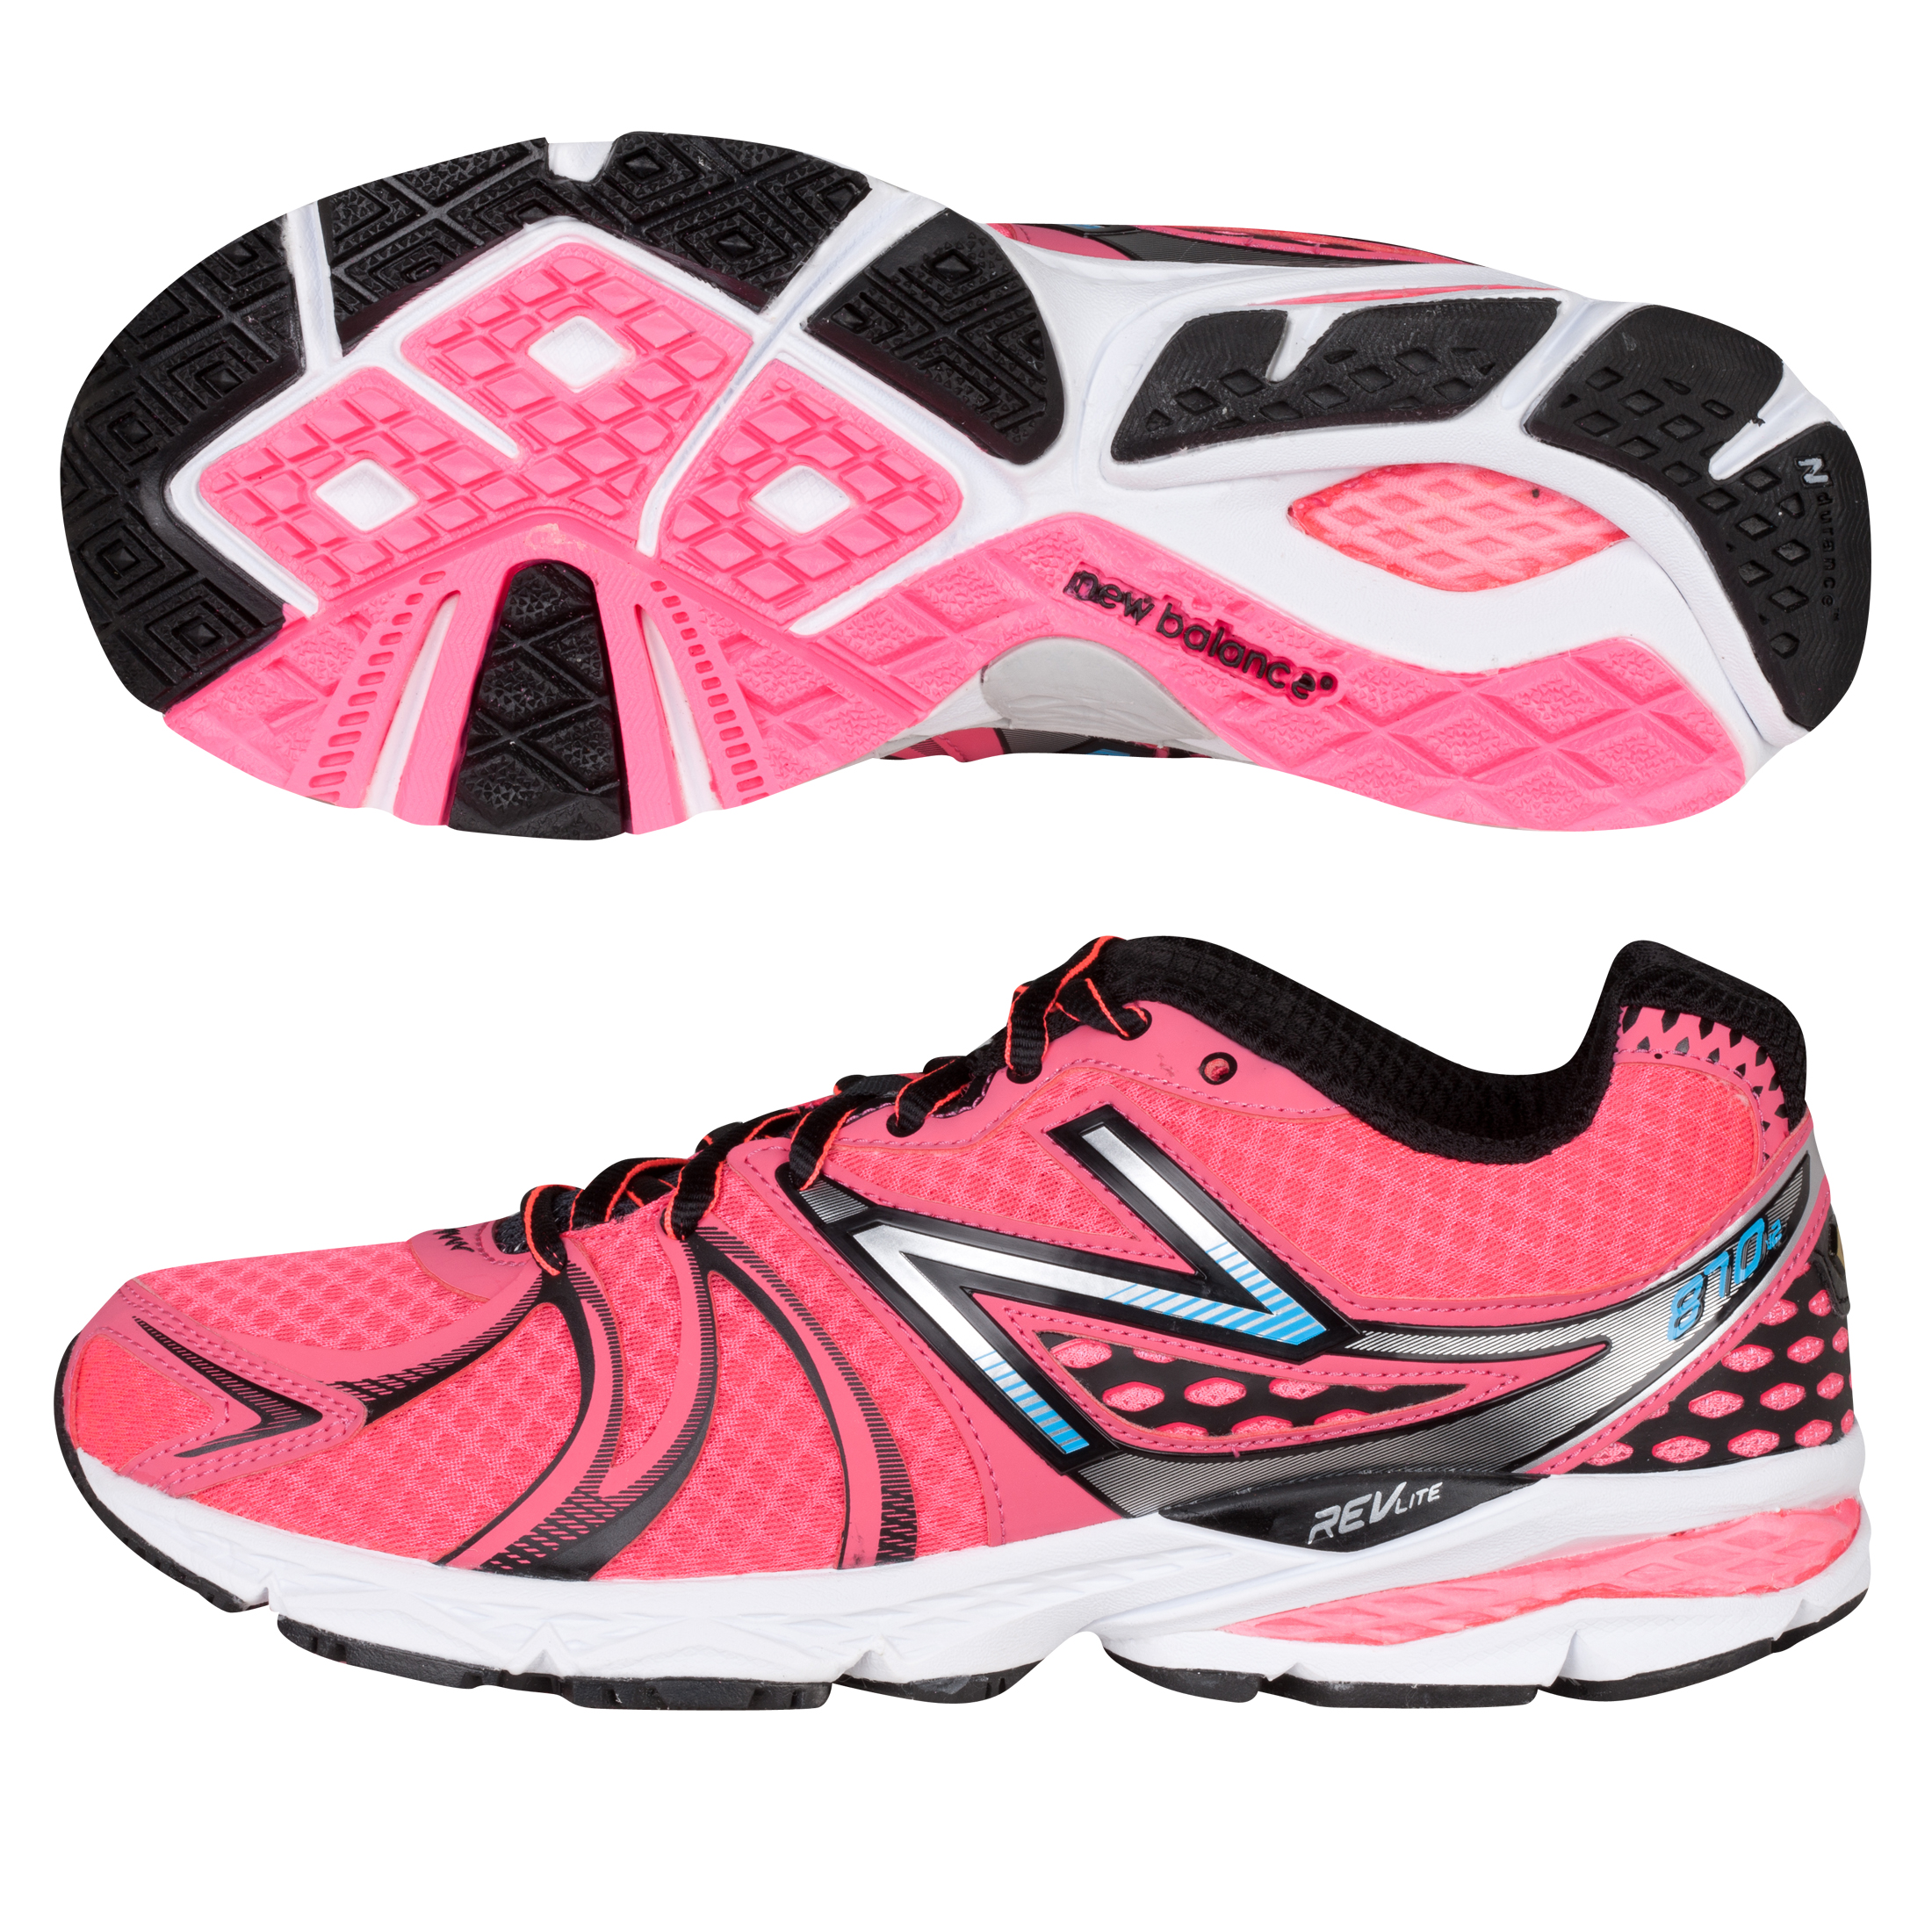 New Balance 870V2 Trainer - Pink Black - Womens